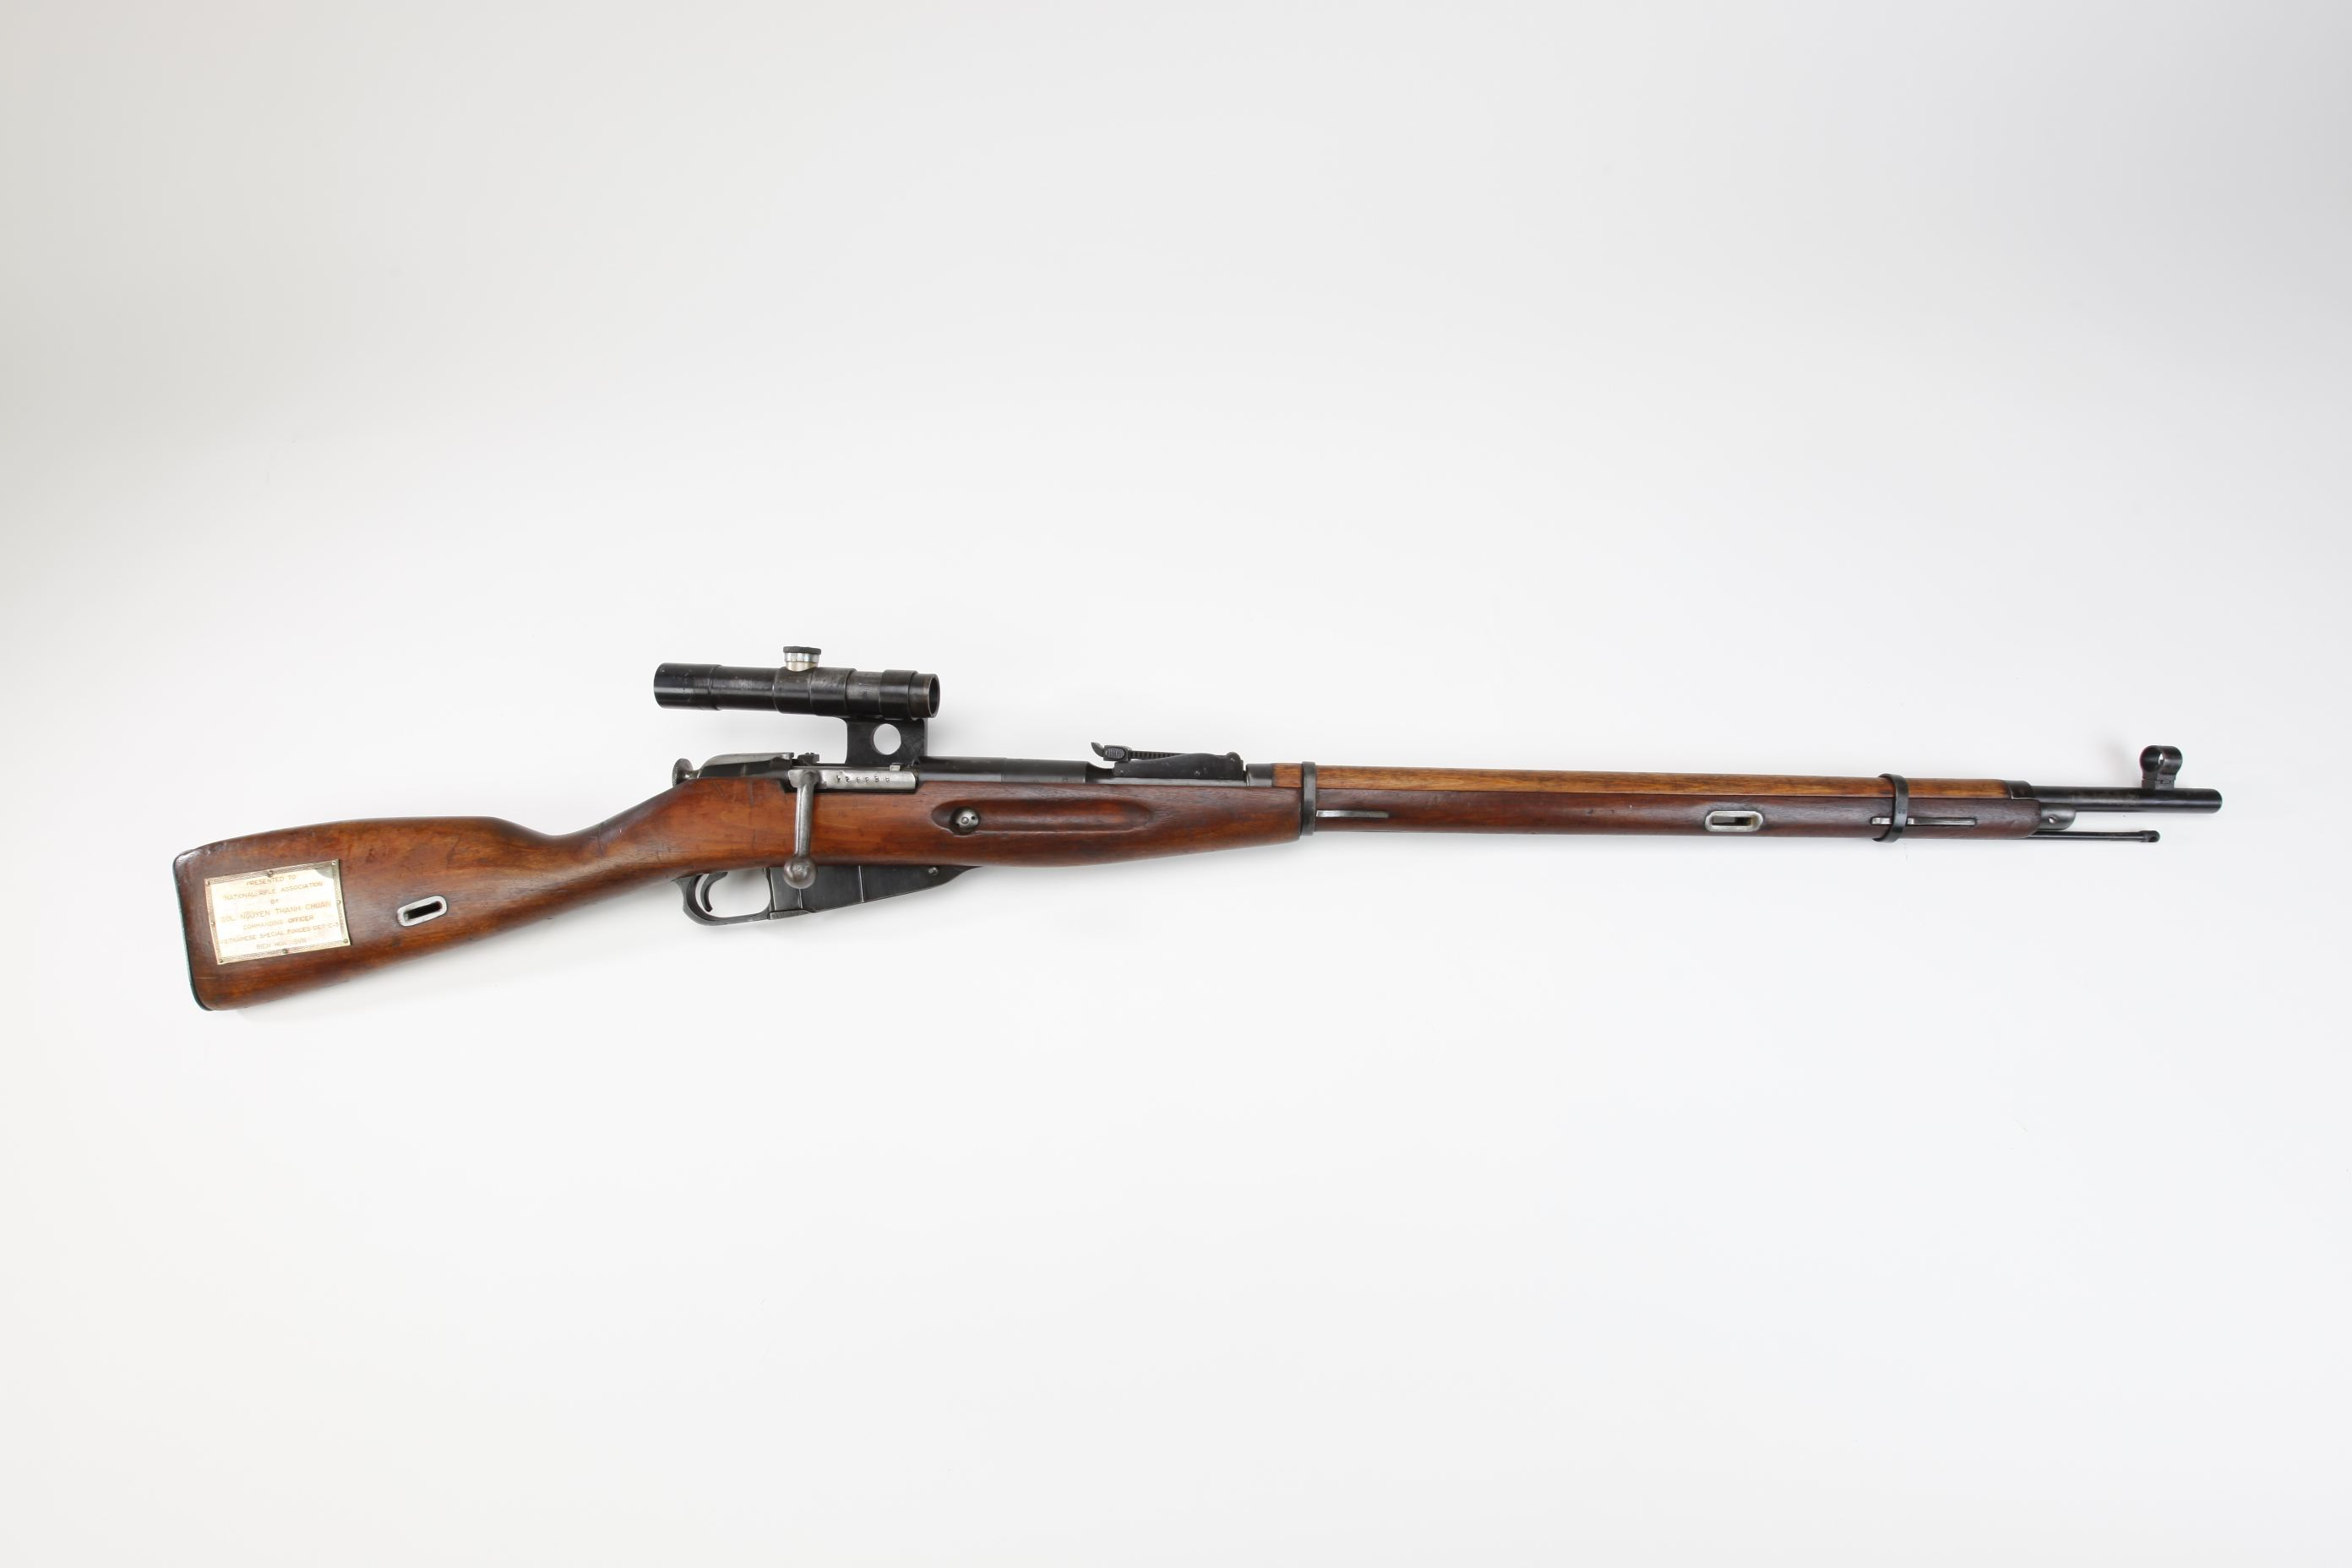 Hungarian Mosin Nagant Model 1891 30 Bolt Action Rifle with telescopic sight